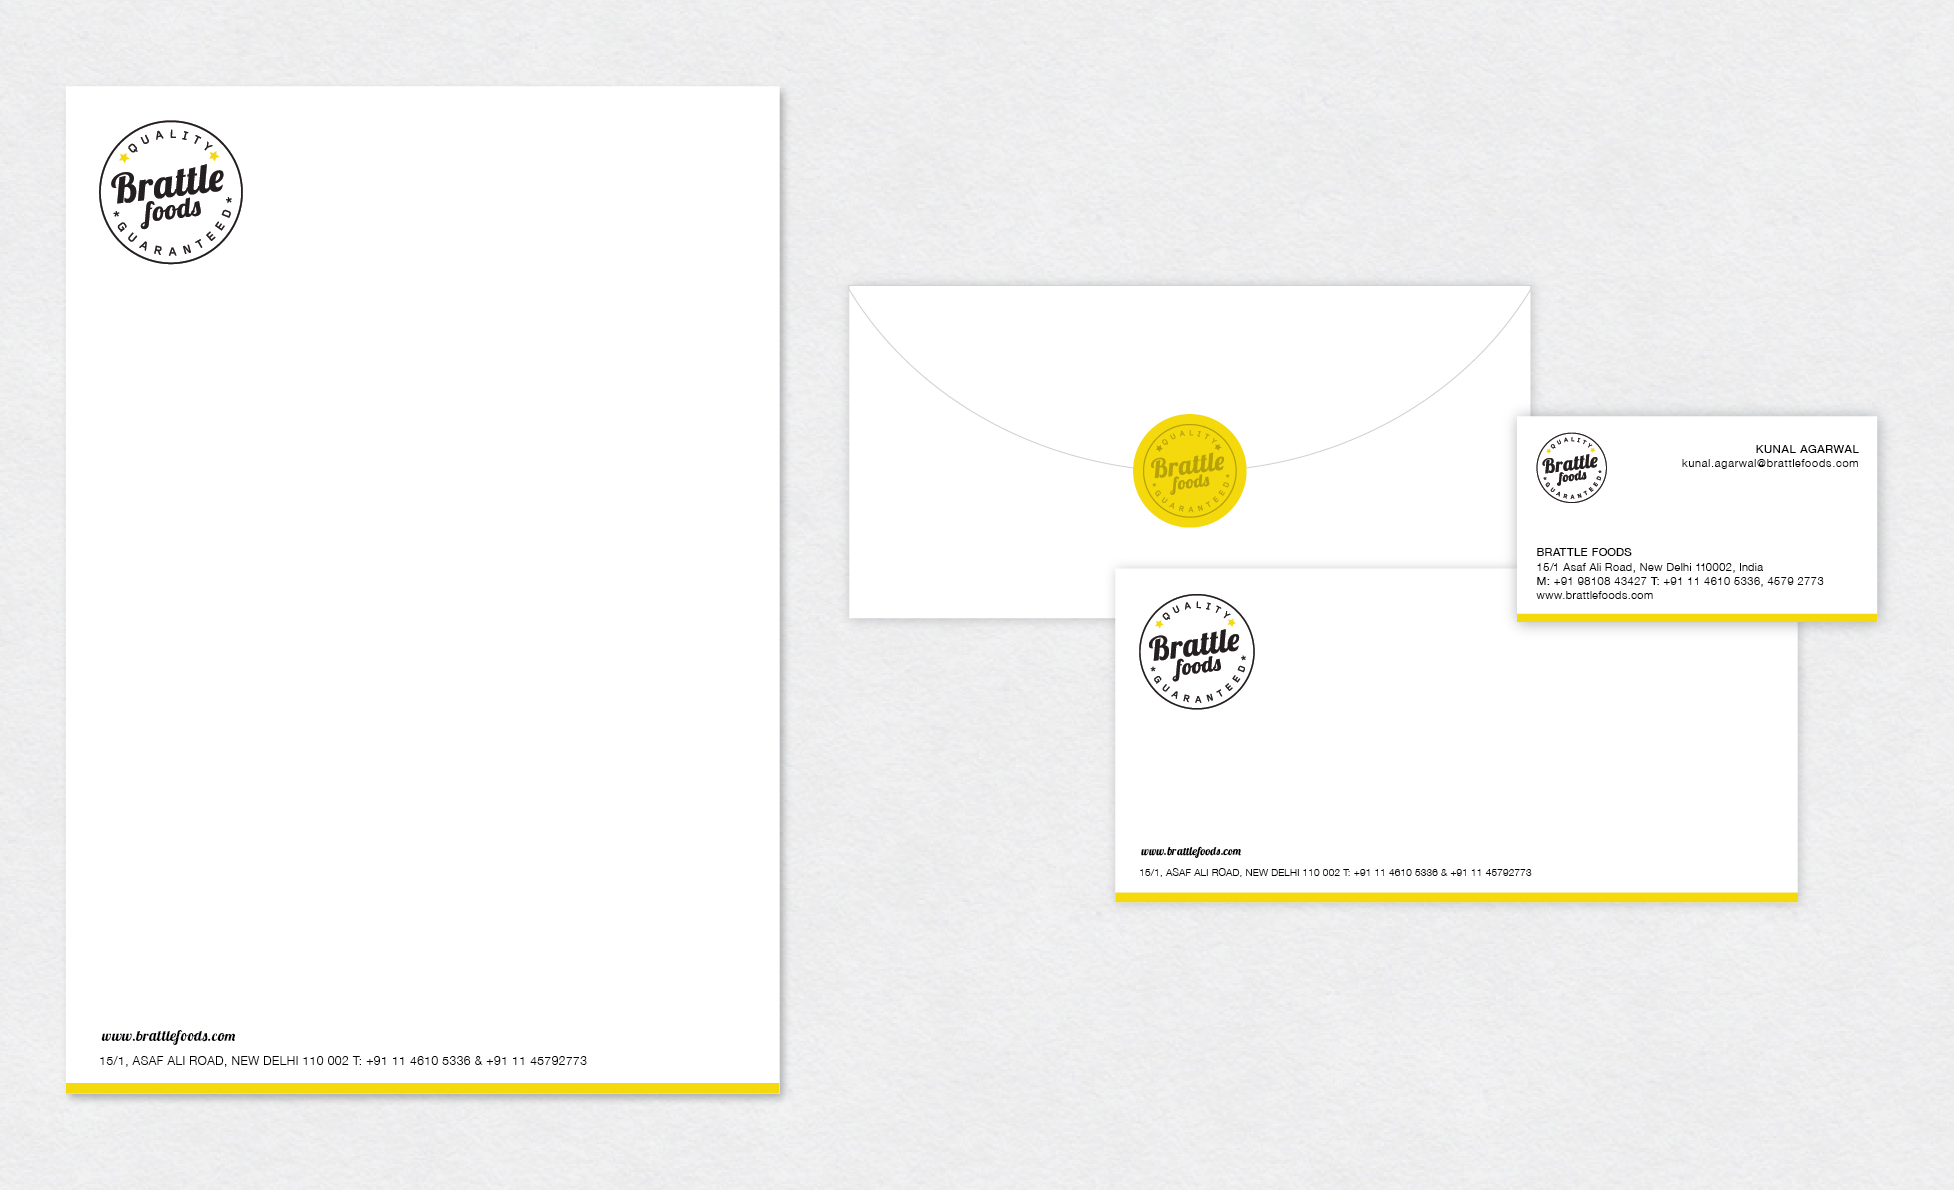 LWD - Brattle foods stationery